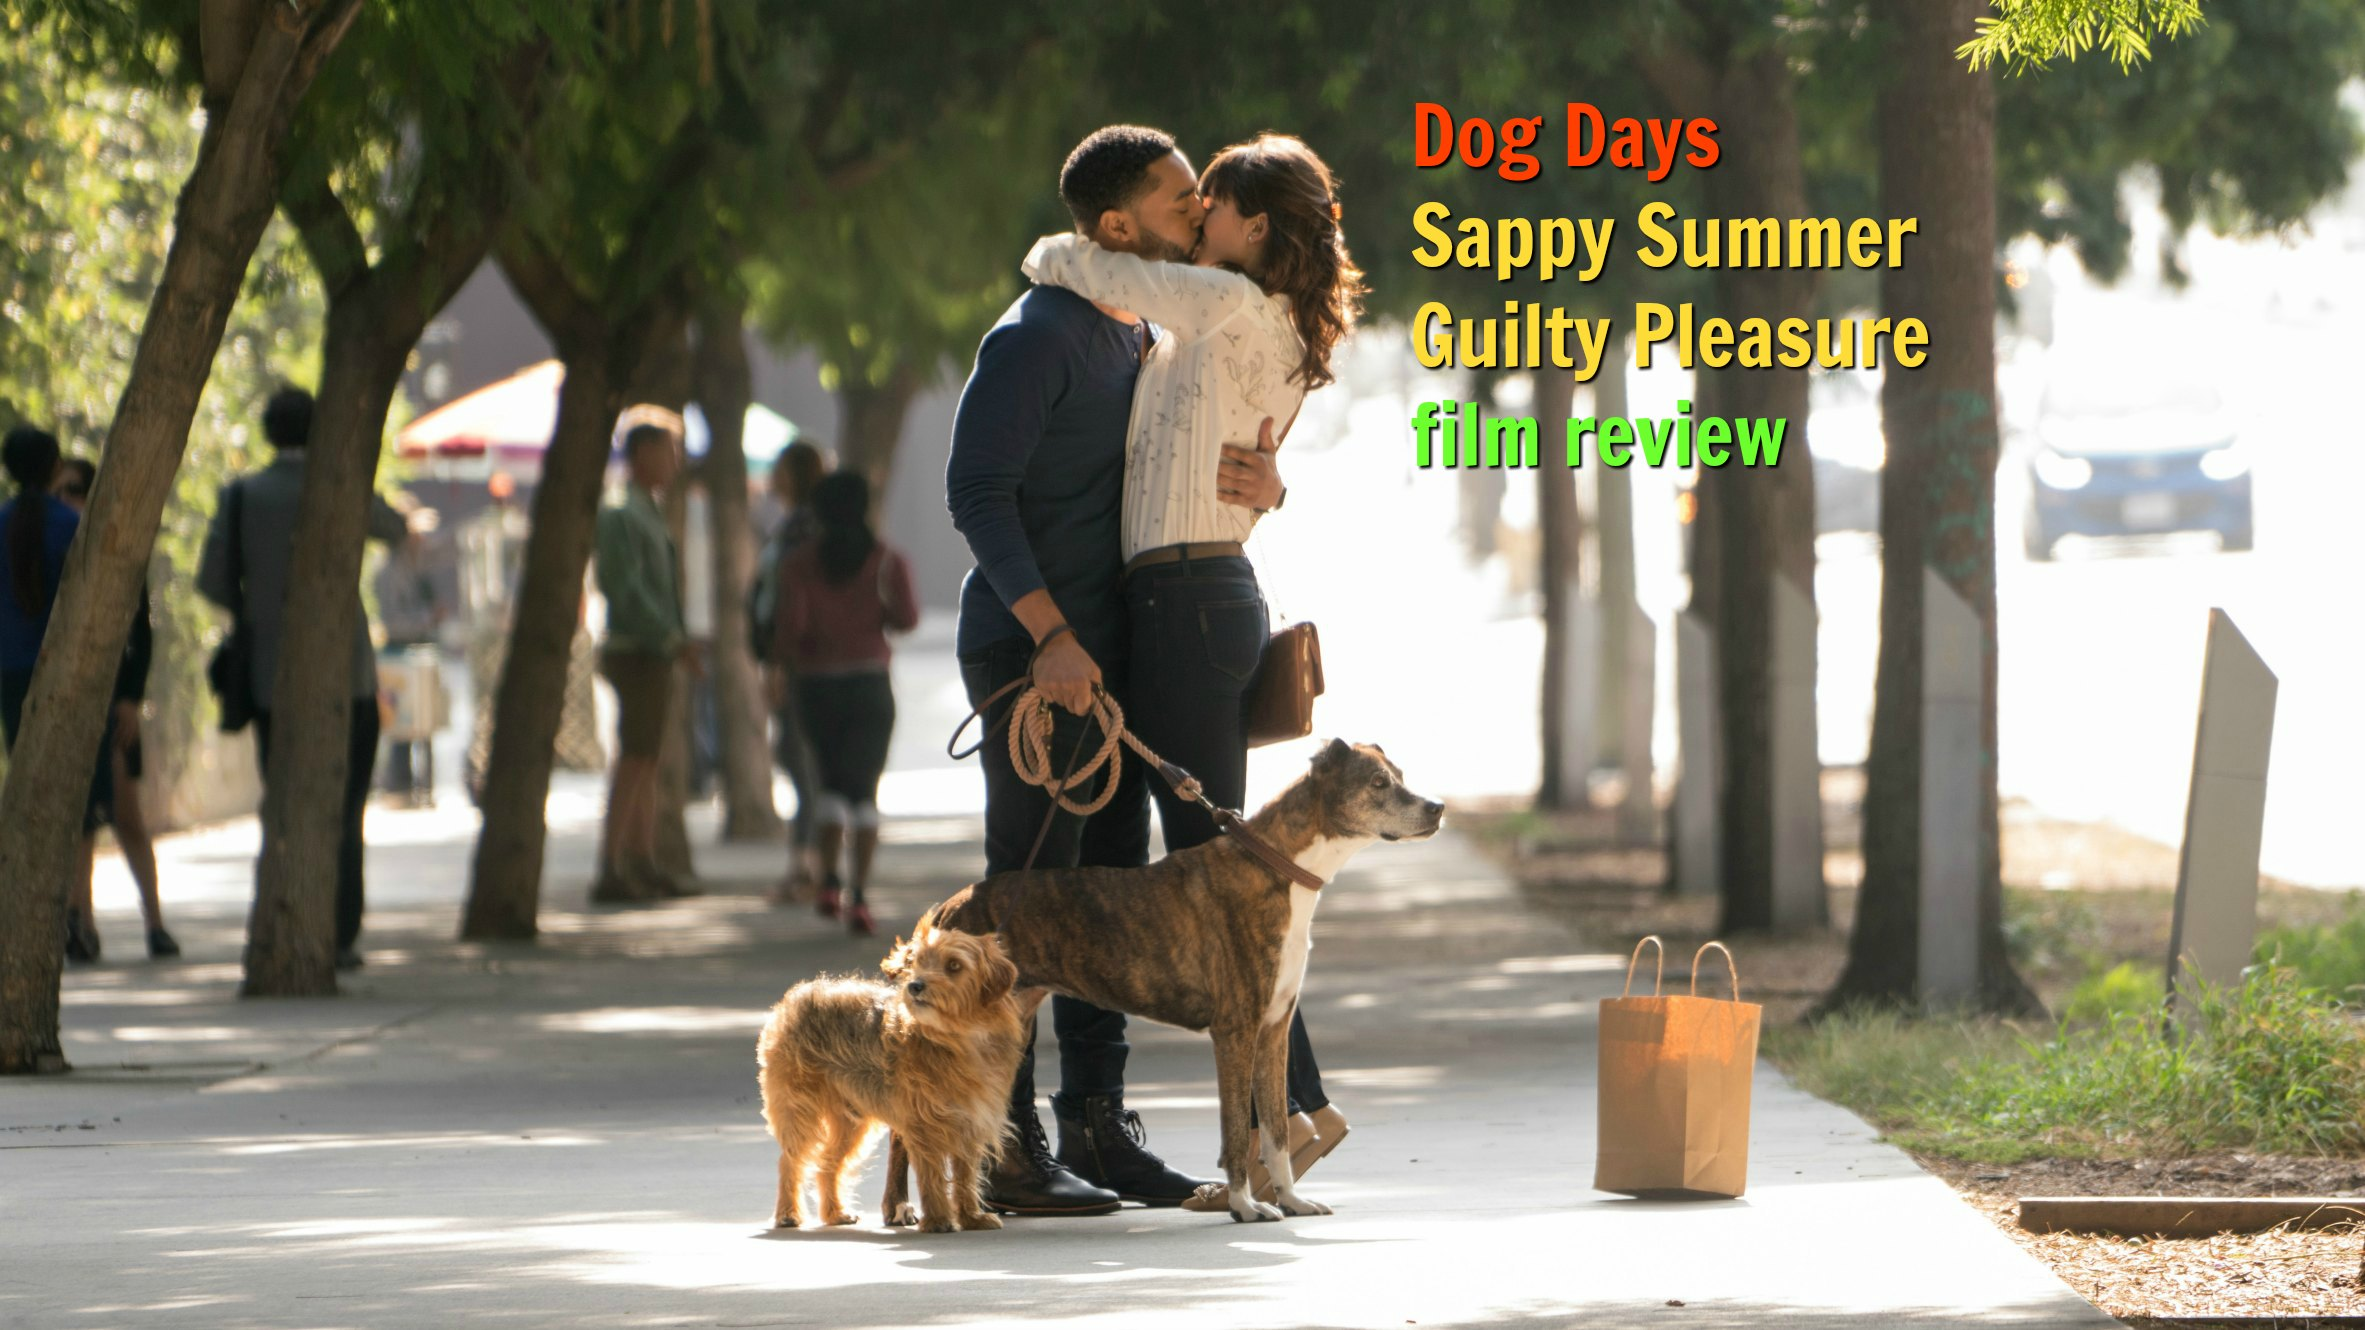 Film Review: Dog Days, a Sappy Summer Rom-Com for Dog Lovers